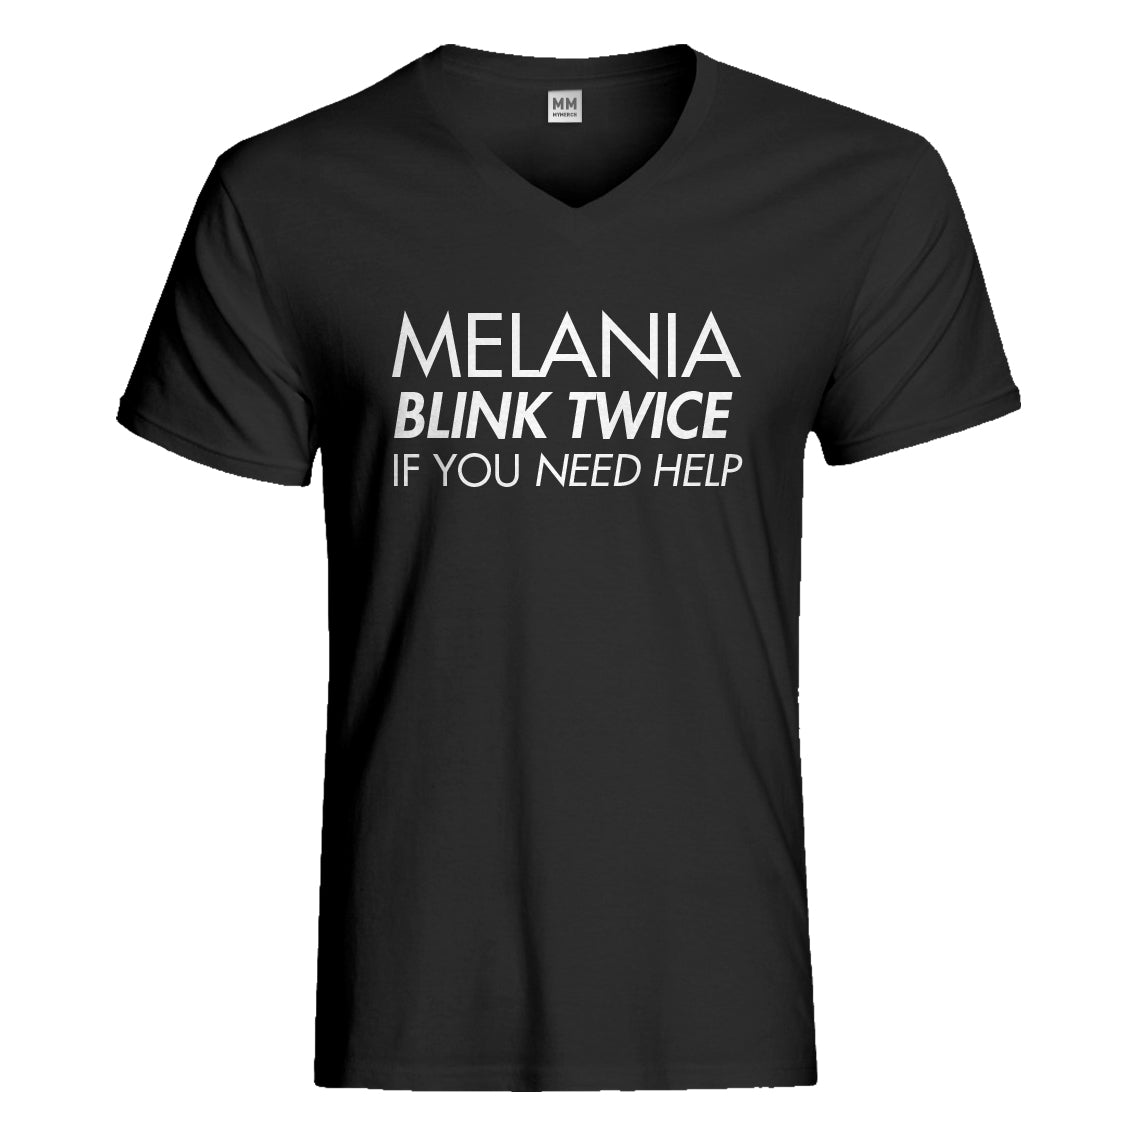 Mens Melania Blink Twice if You Need Help! Vneck T-shirt